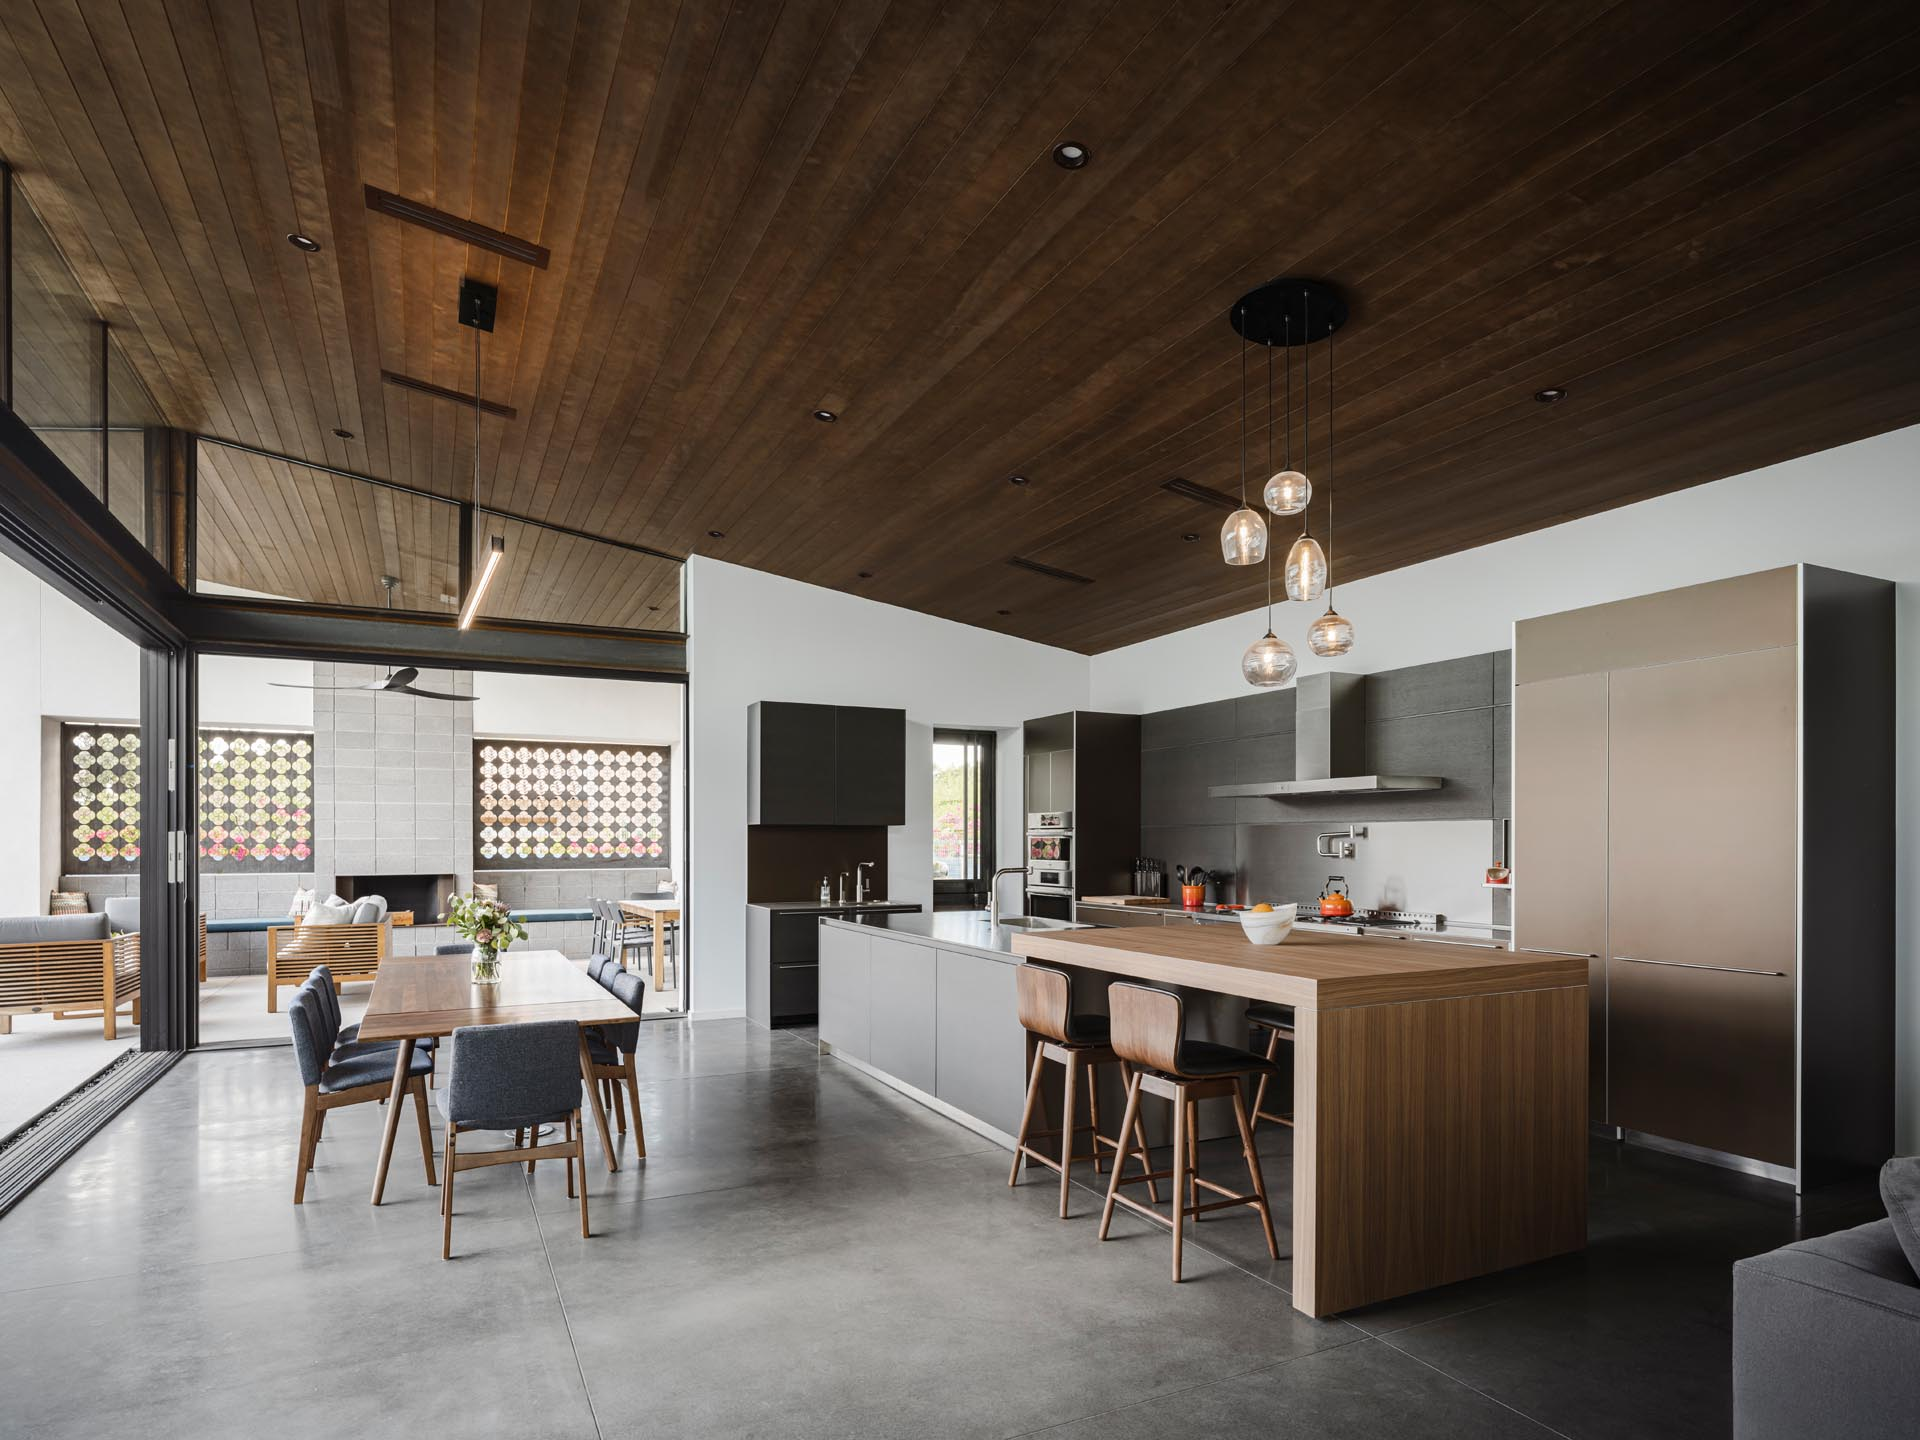 The open plan dining room and kitchen of this modern home includes concrete flooring, a wood dining table, and a large kitchen with an expansive island with a raised section that acts as a bar.